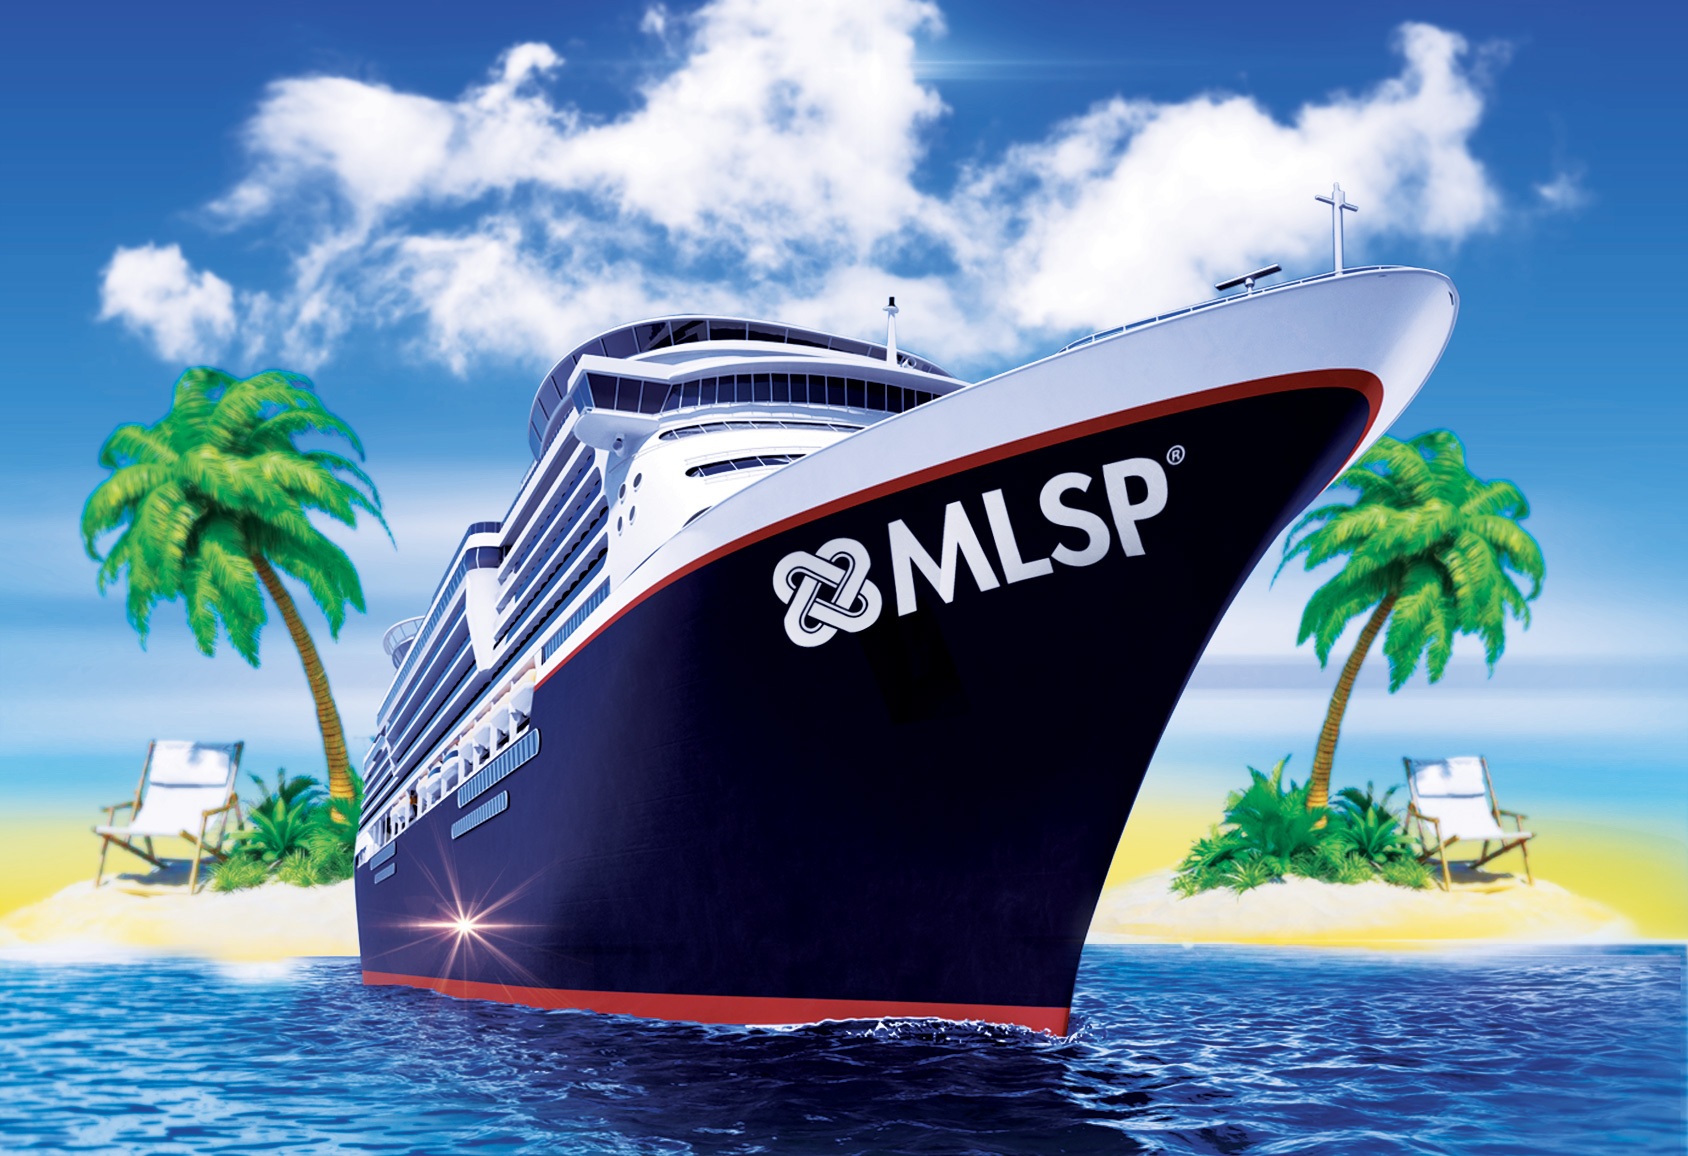 3-Day MLSP Mastermind Cruise Experience